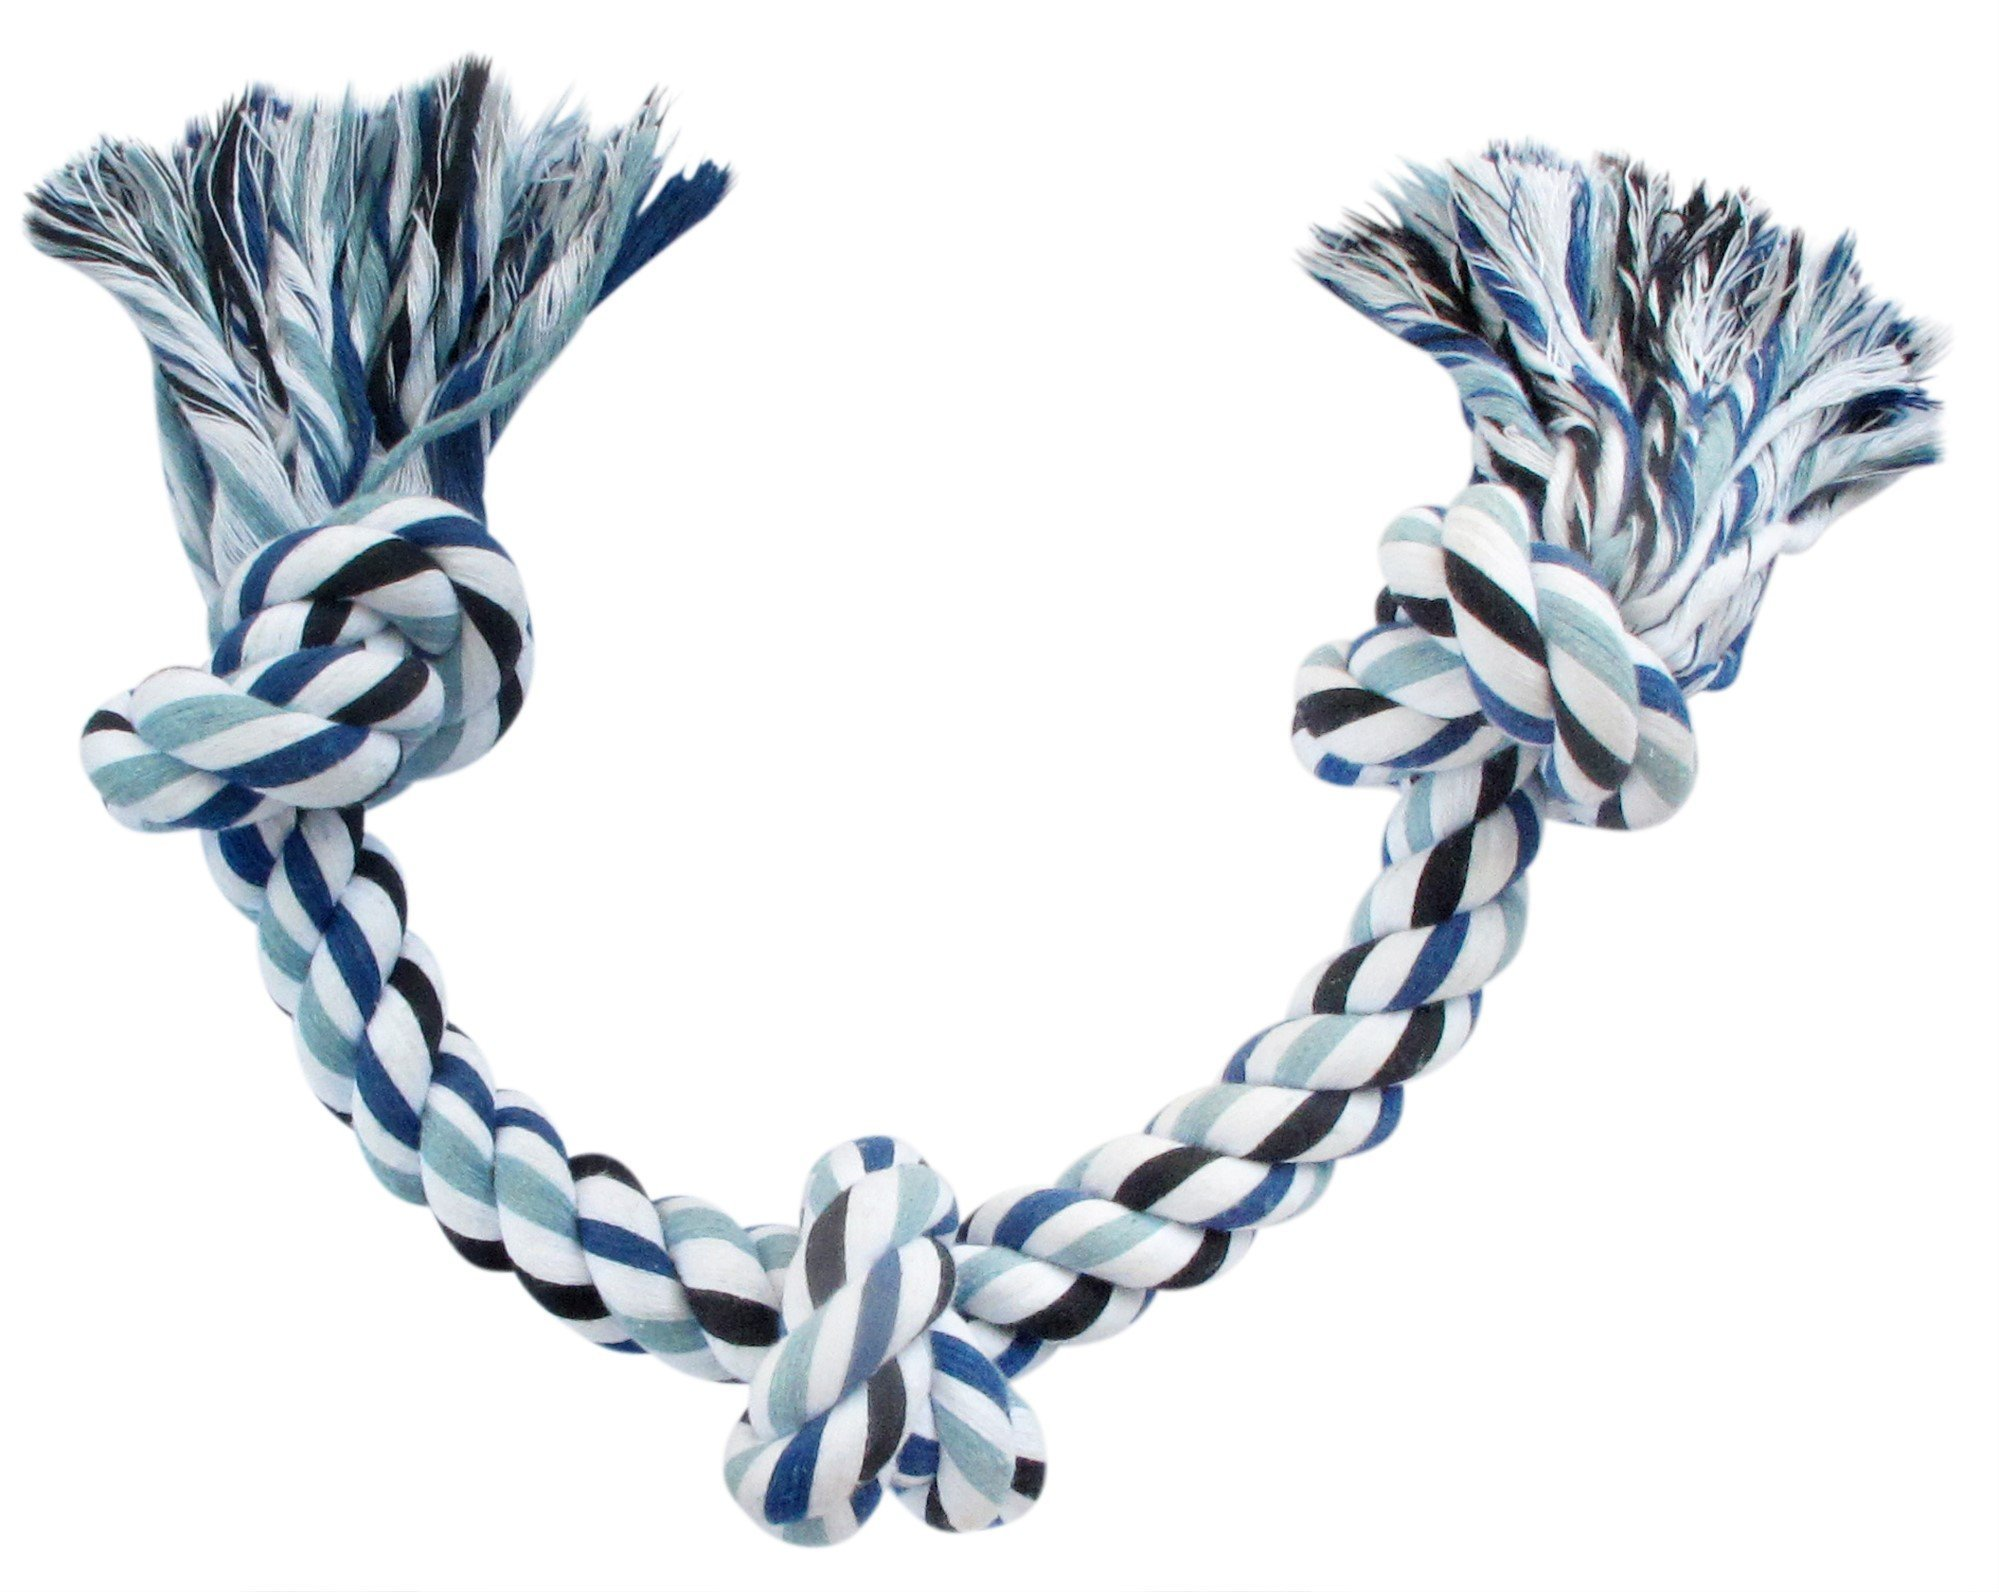 Blue's Choice Rope Toy for Dogs, Durable Chew Toy for Dogs, Good as a Puppy Toy for Puppy Teething for Aggressive Chewers, Indestructible Toy for Large and Medium Dog Breeds, Blue, Large